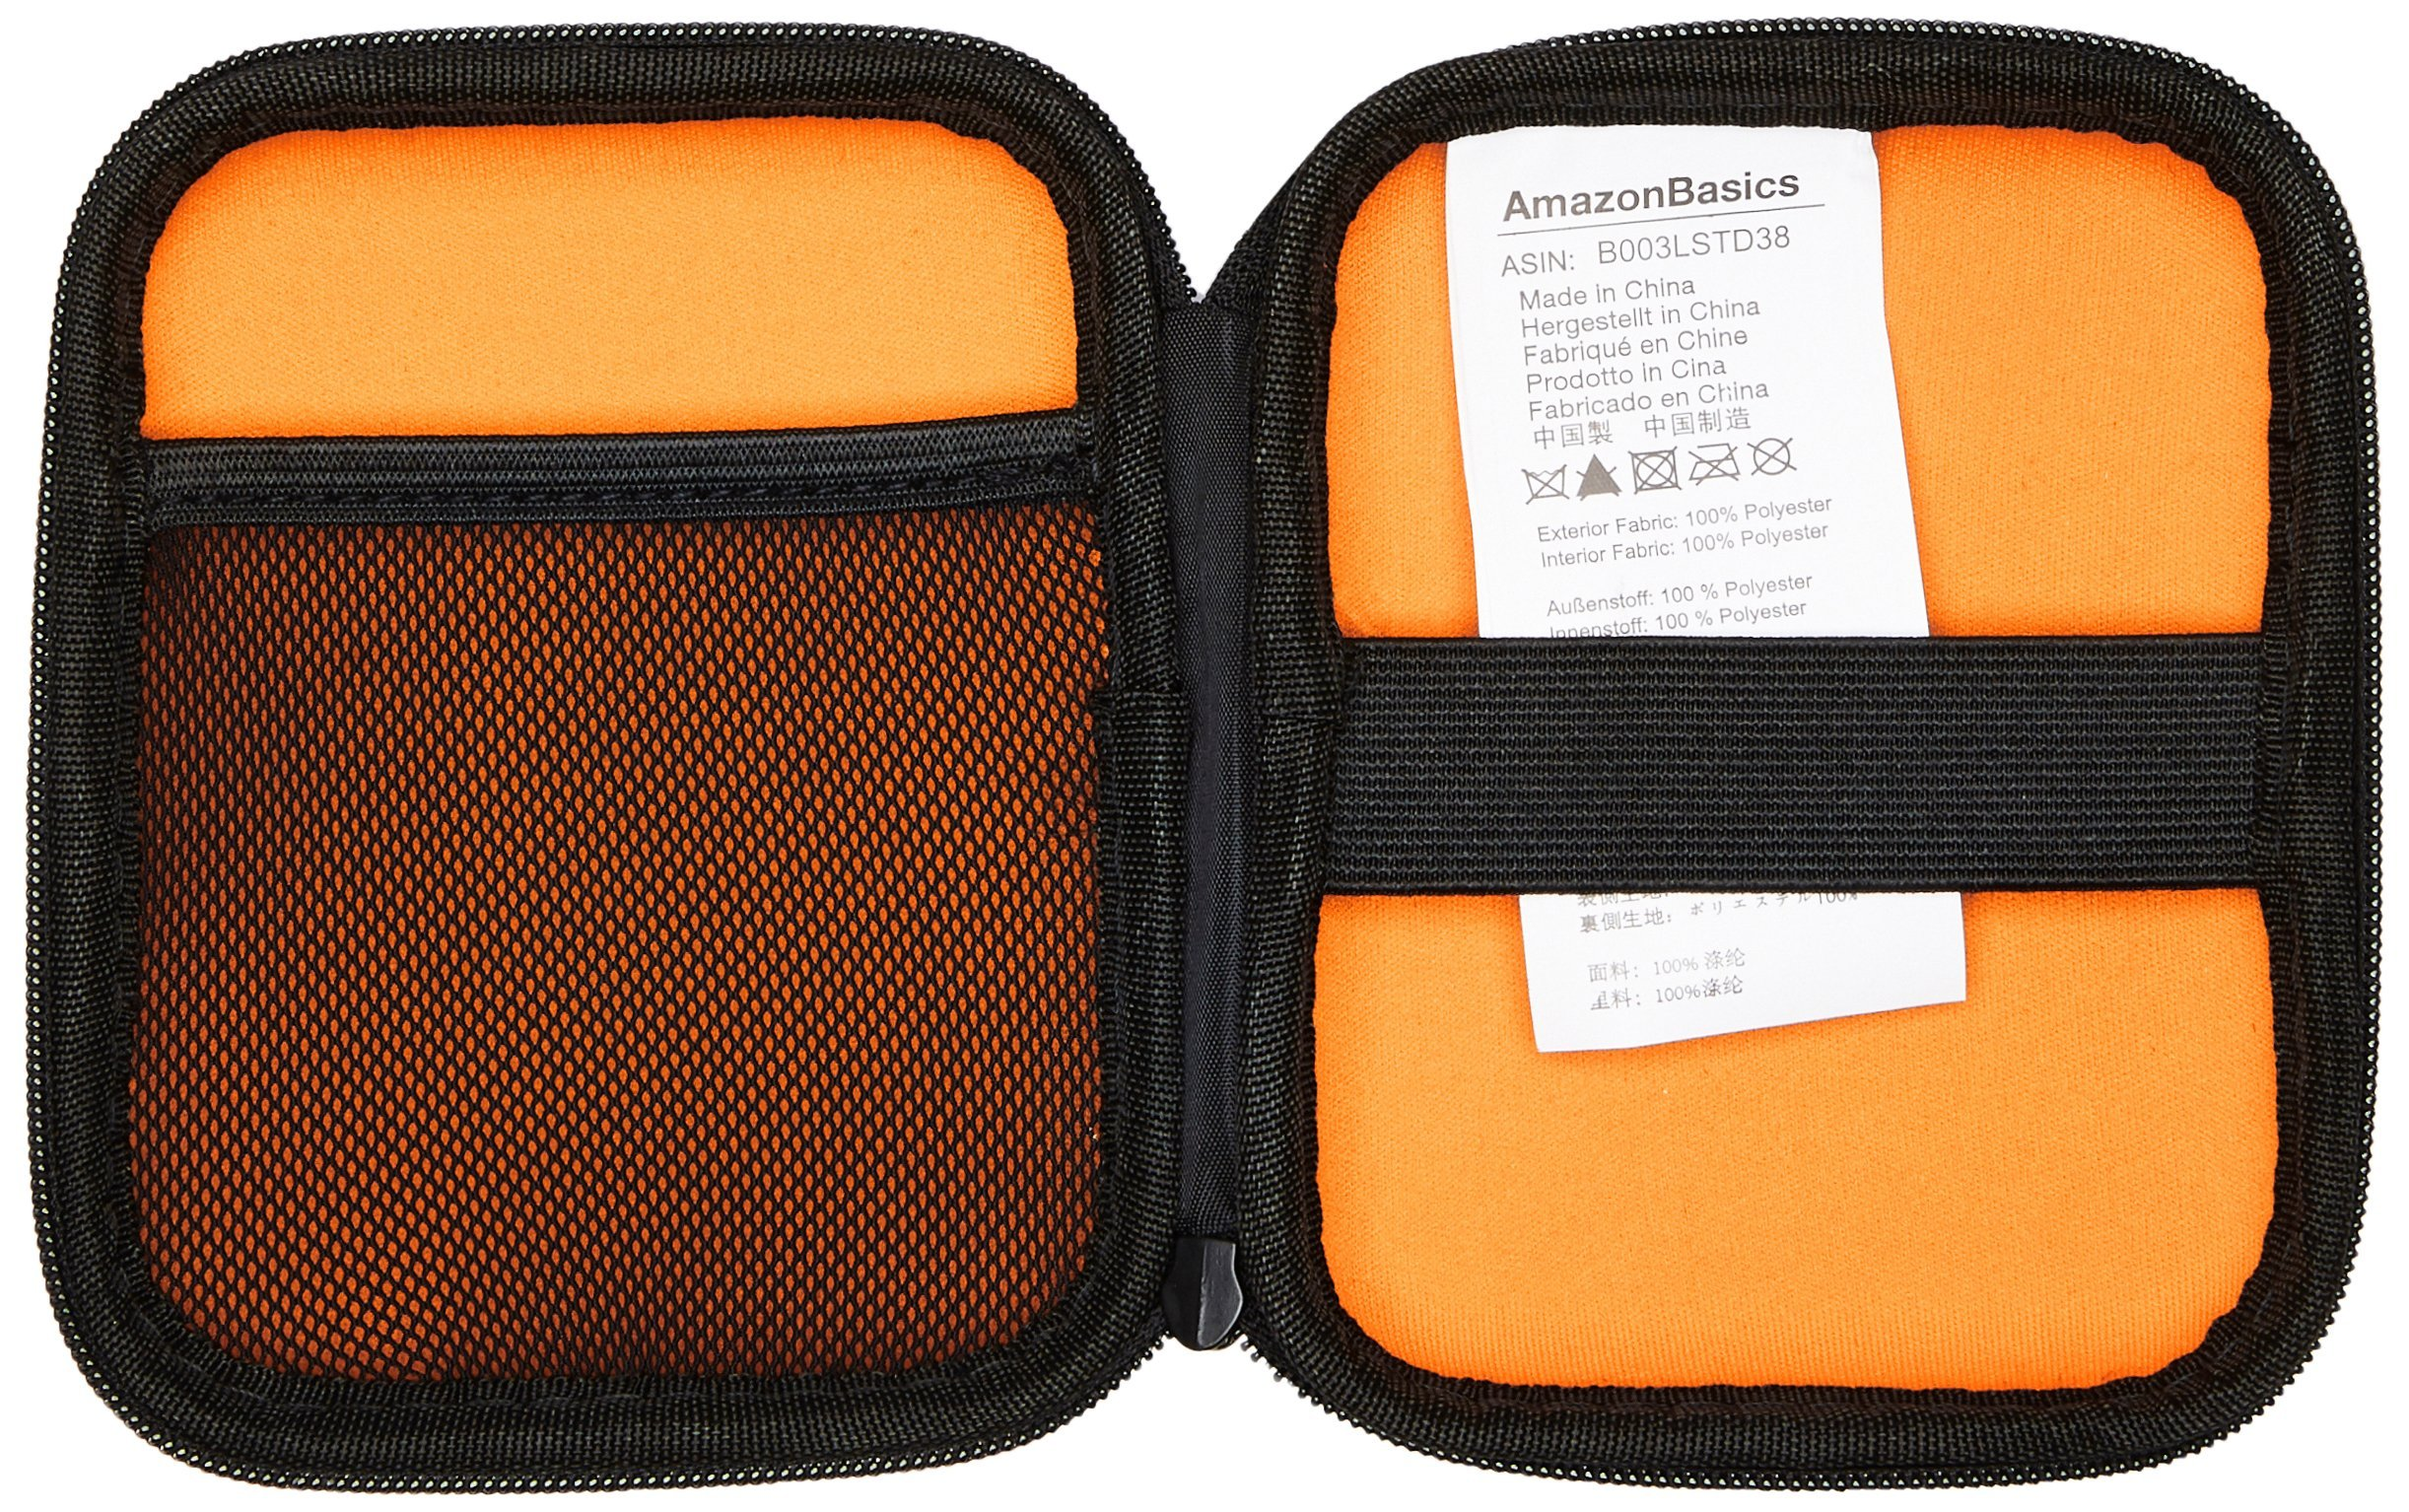 AmazonBasics Hard Carrying Case for My Passport Essential, 24-Pack by AmazonBasics (Image #4)